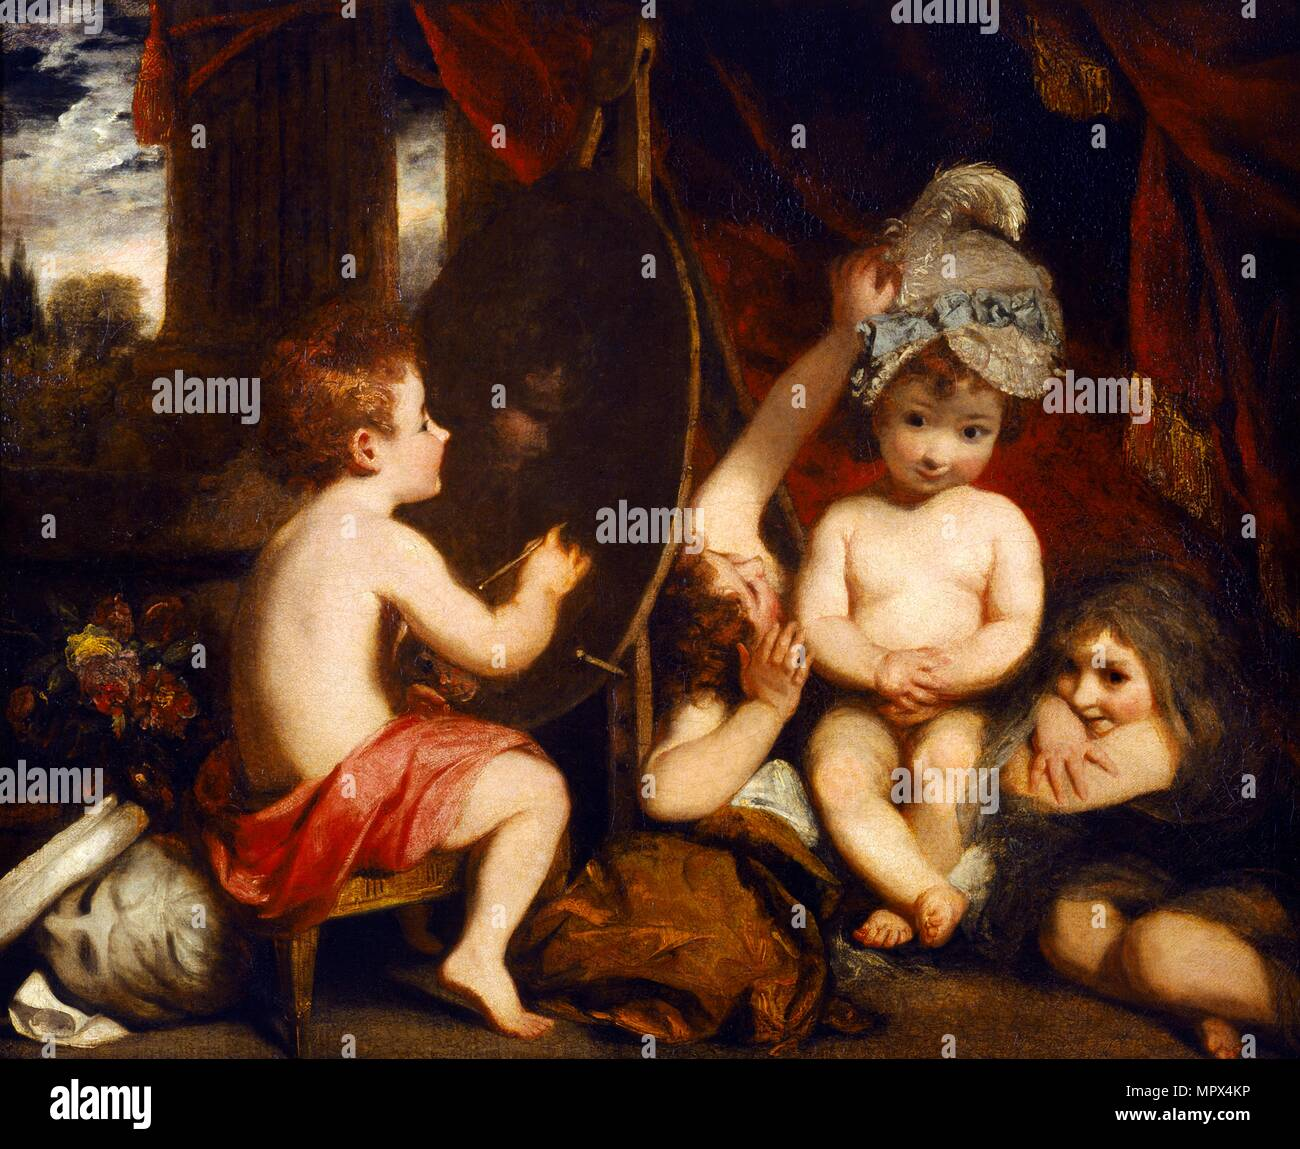 'The Infant Academy', 1781-1782. Artist: Sir Joshua Reynolds. - Stock Image